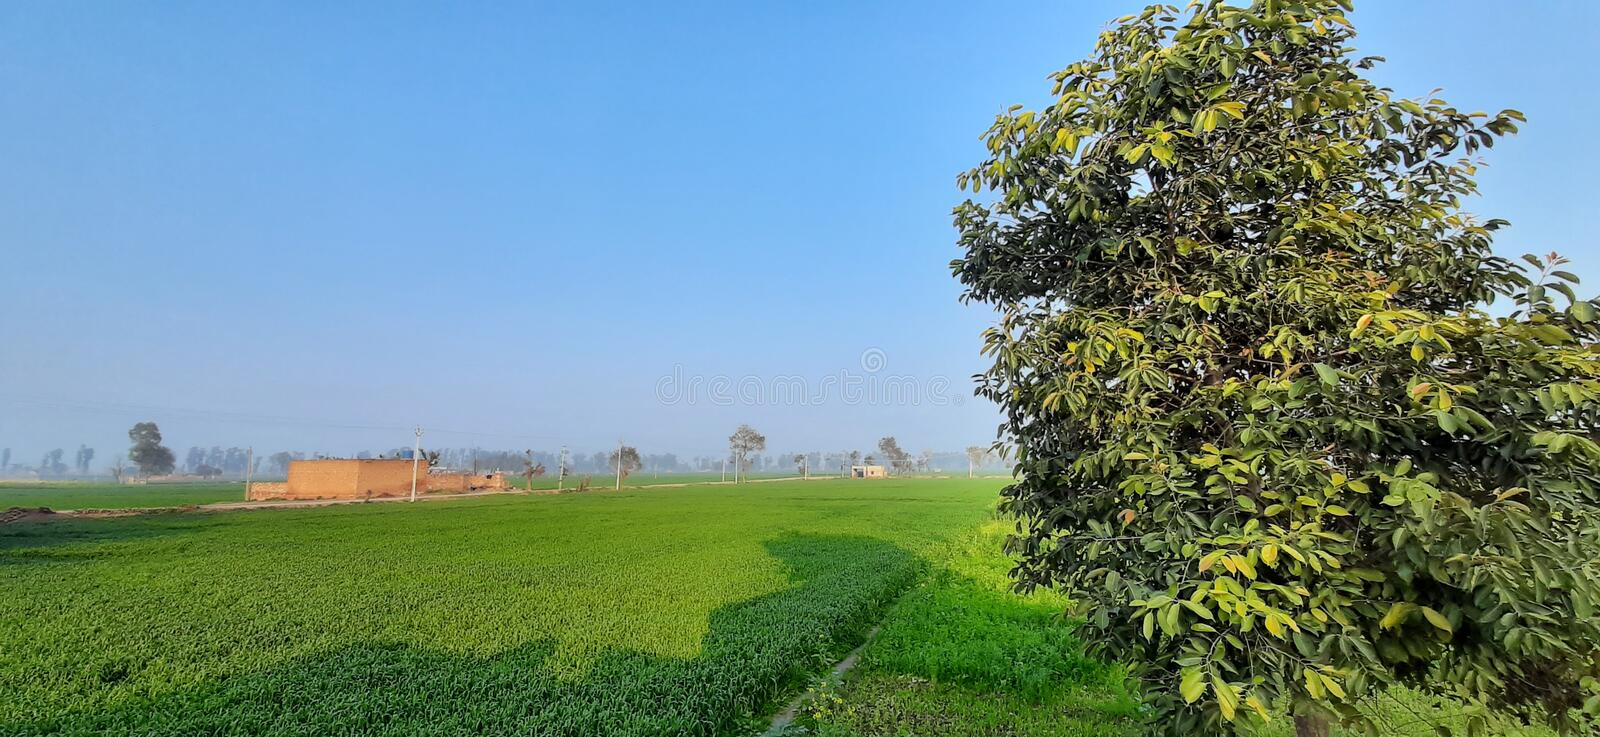 Country side view of Green field and blue sky. This photo was taken in Punjab State of India stock image